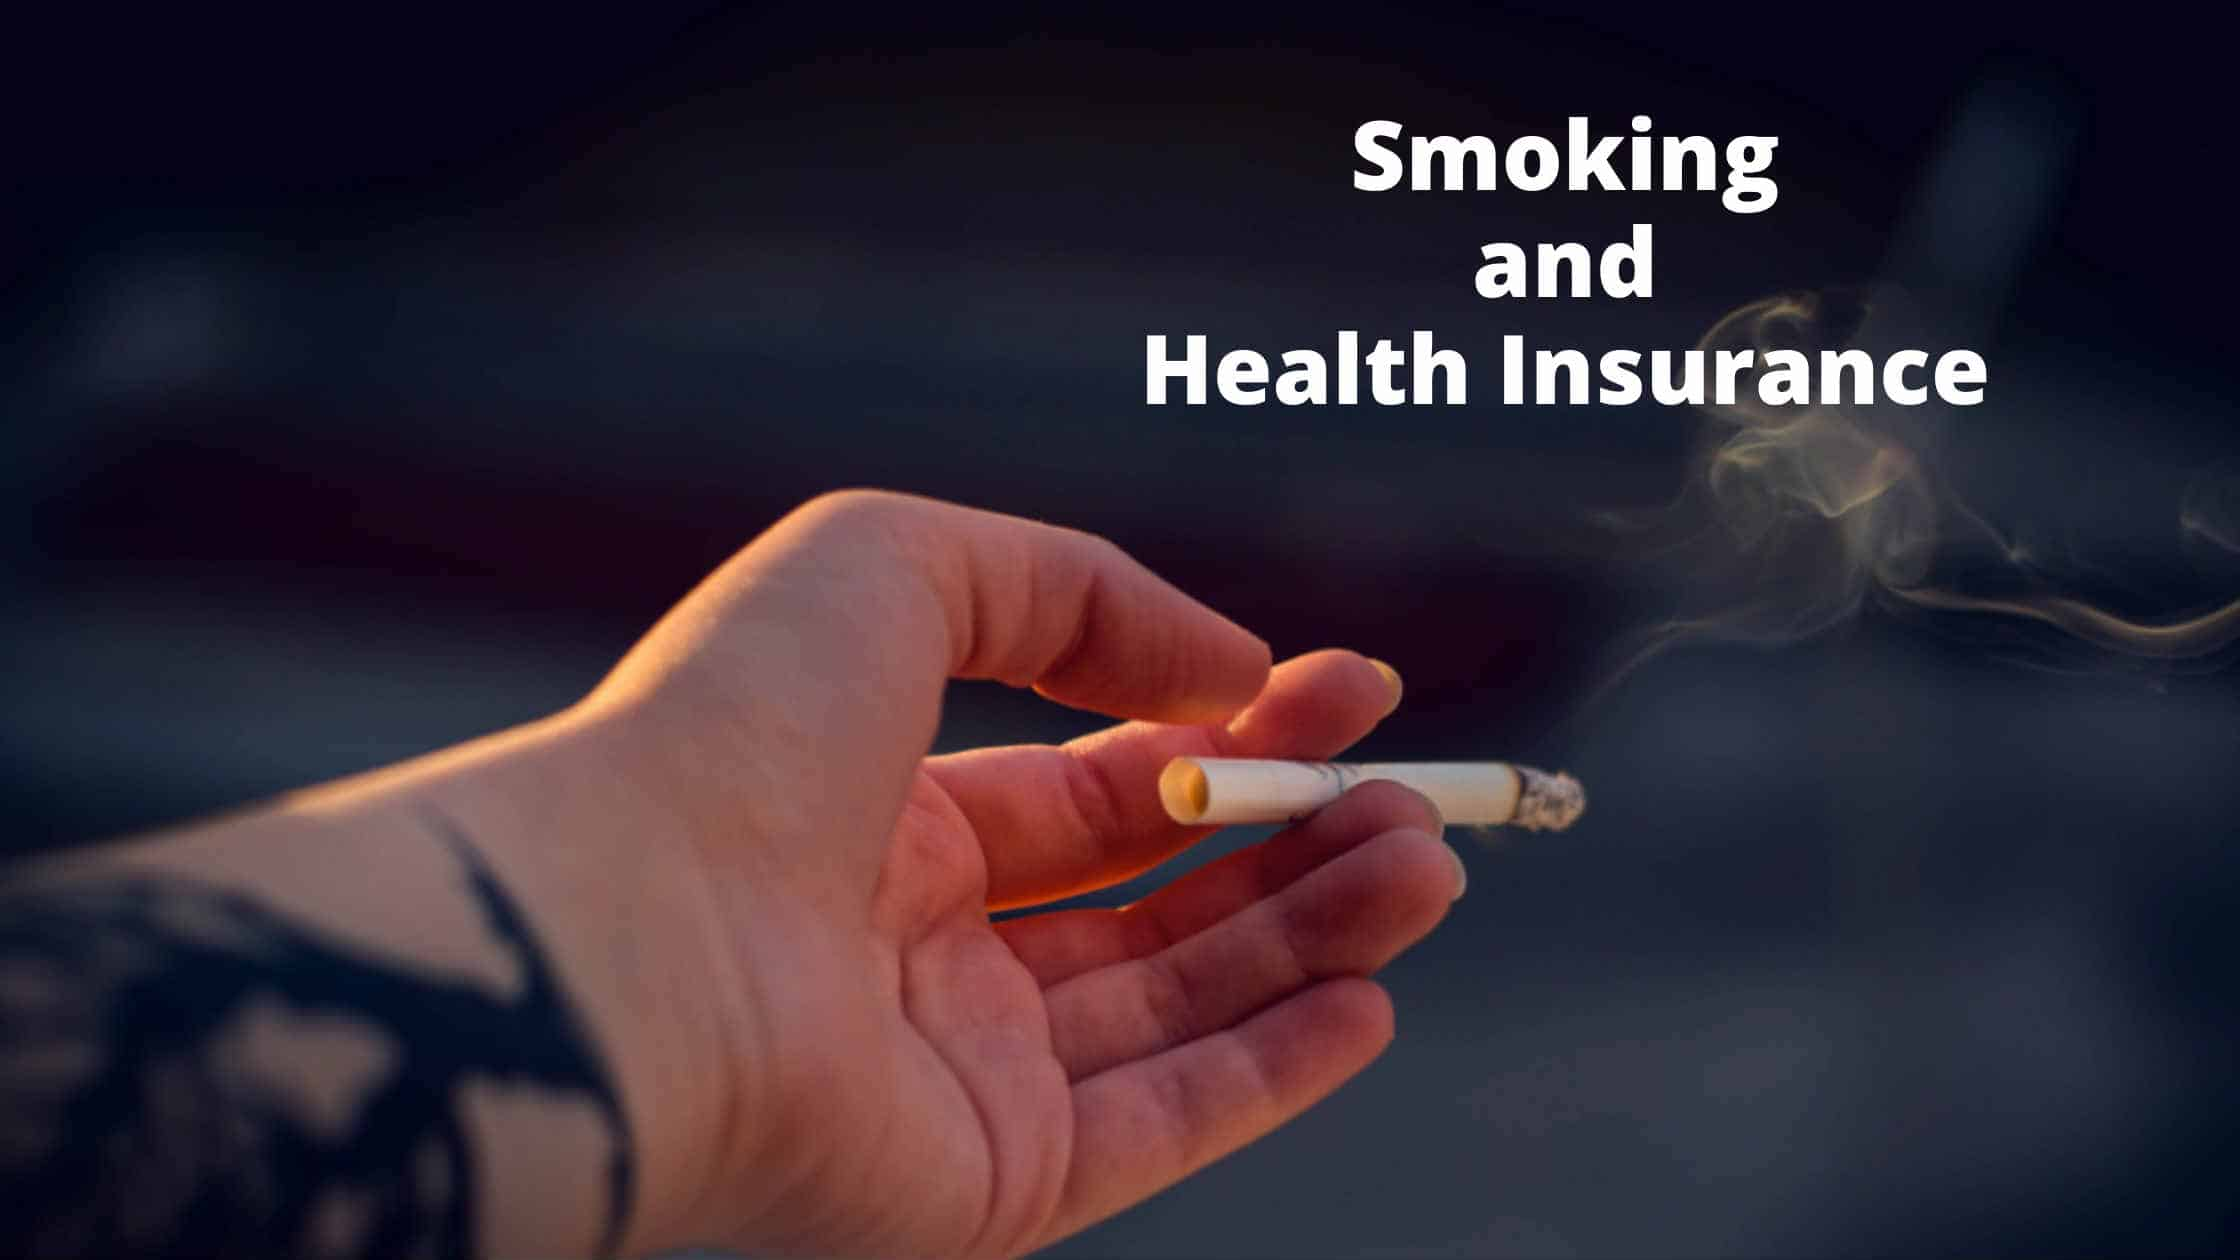 Smoking and Health Insurance